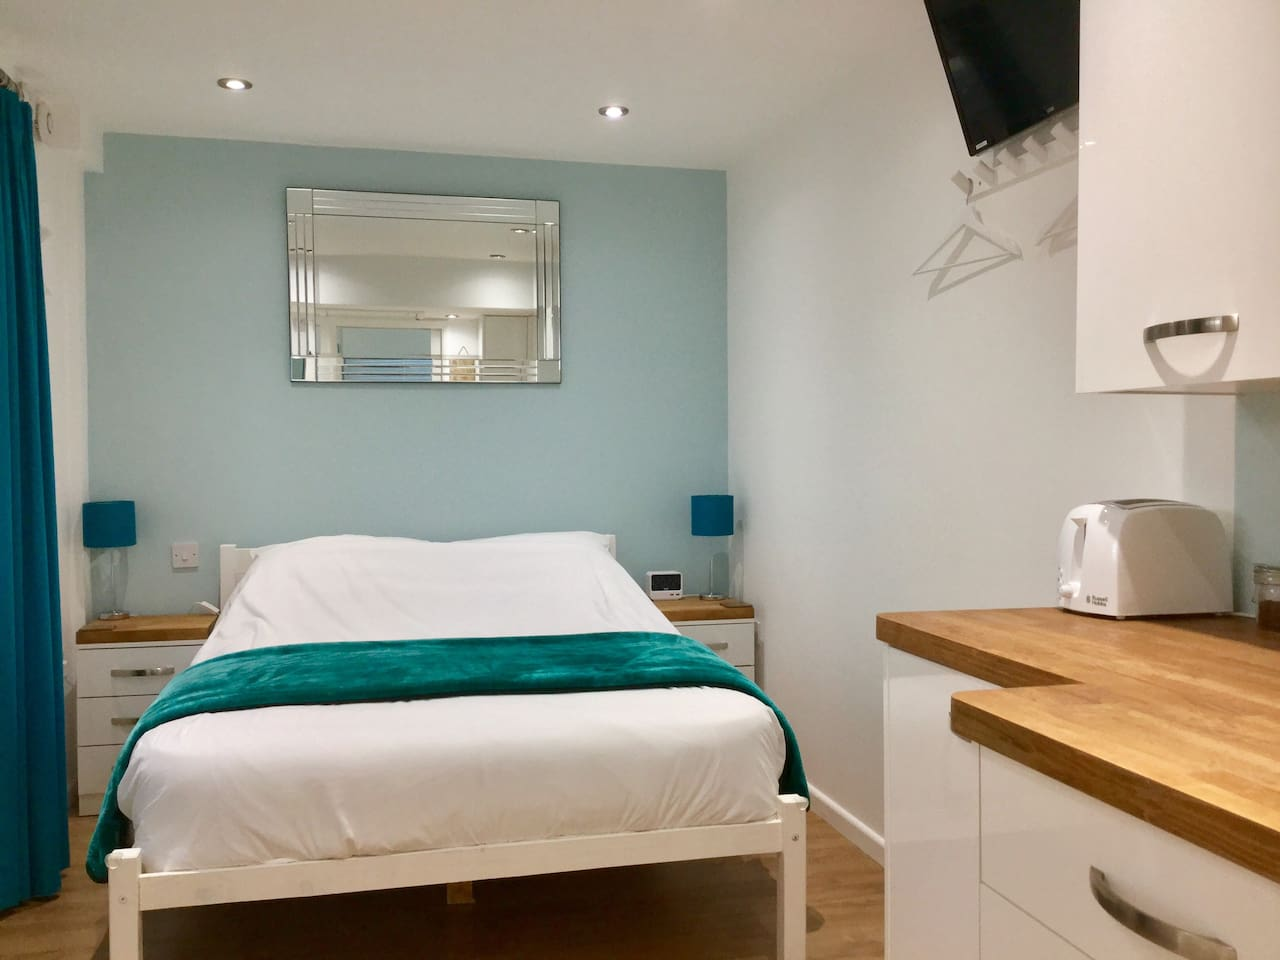 View from en-suite showing bed and kitchenette